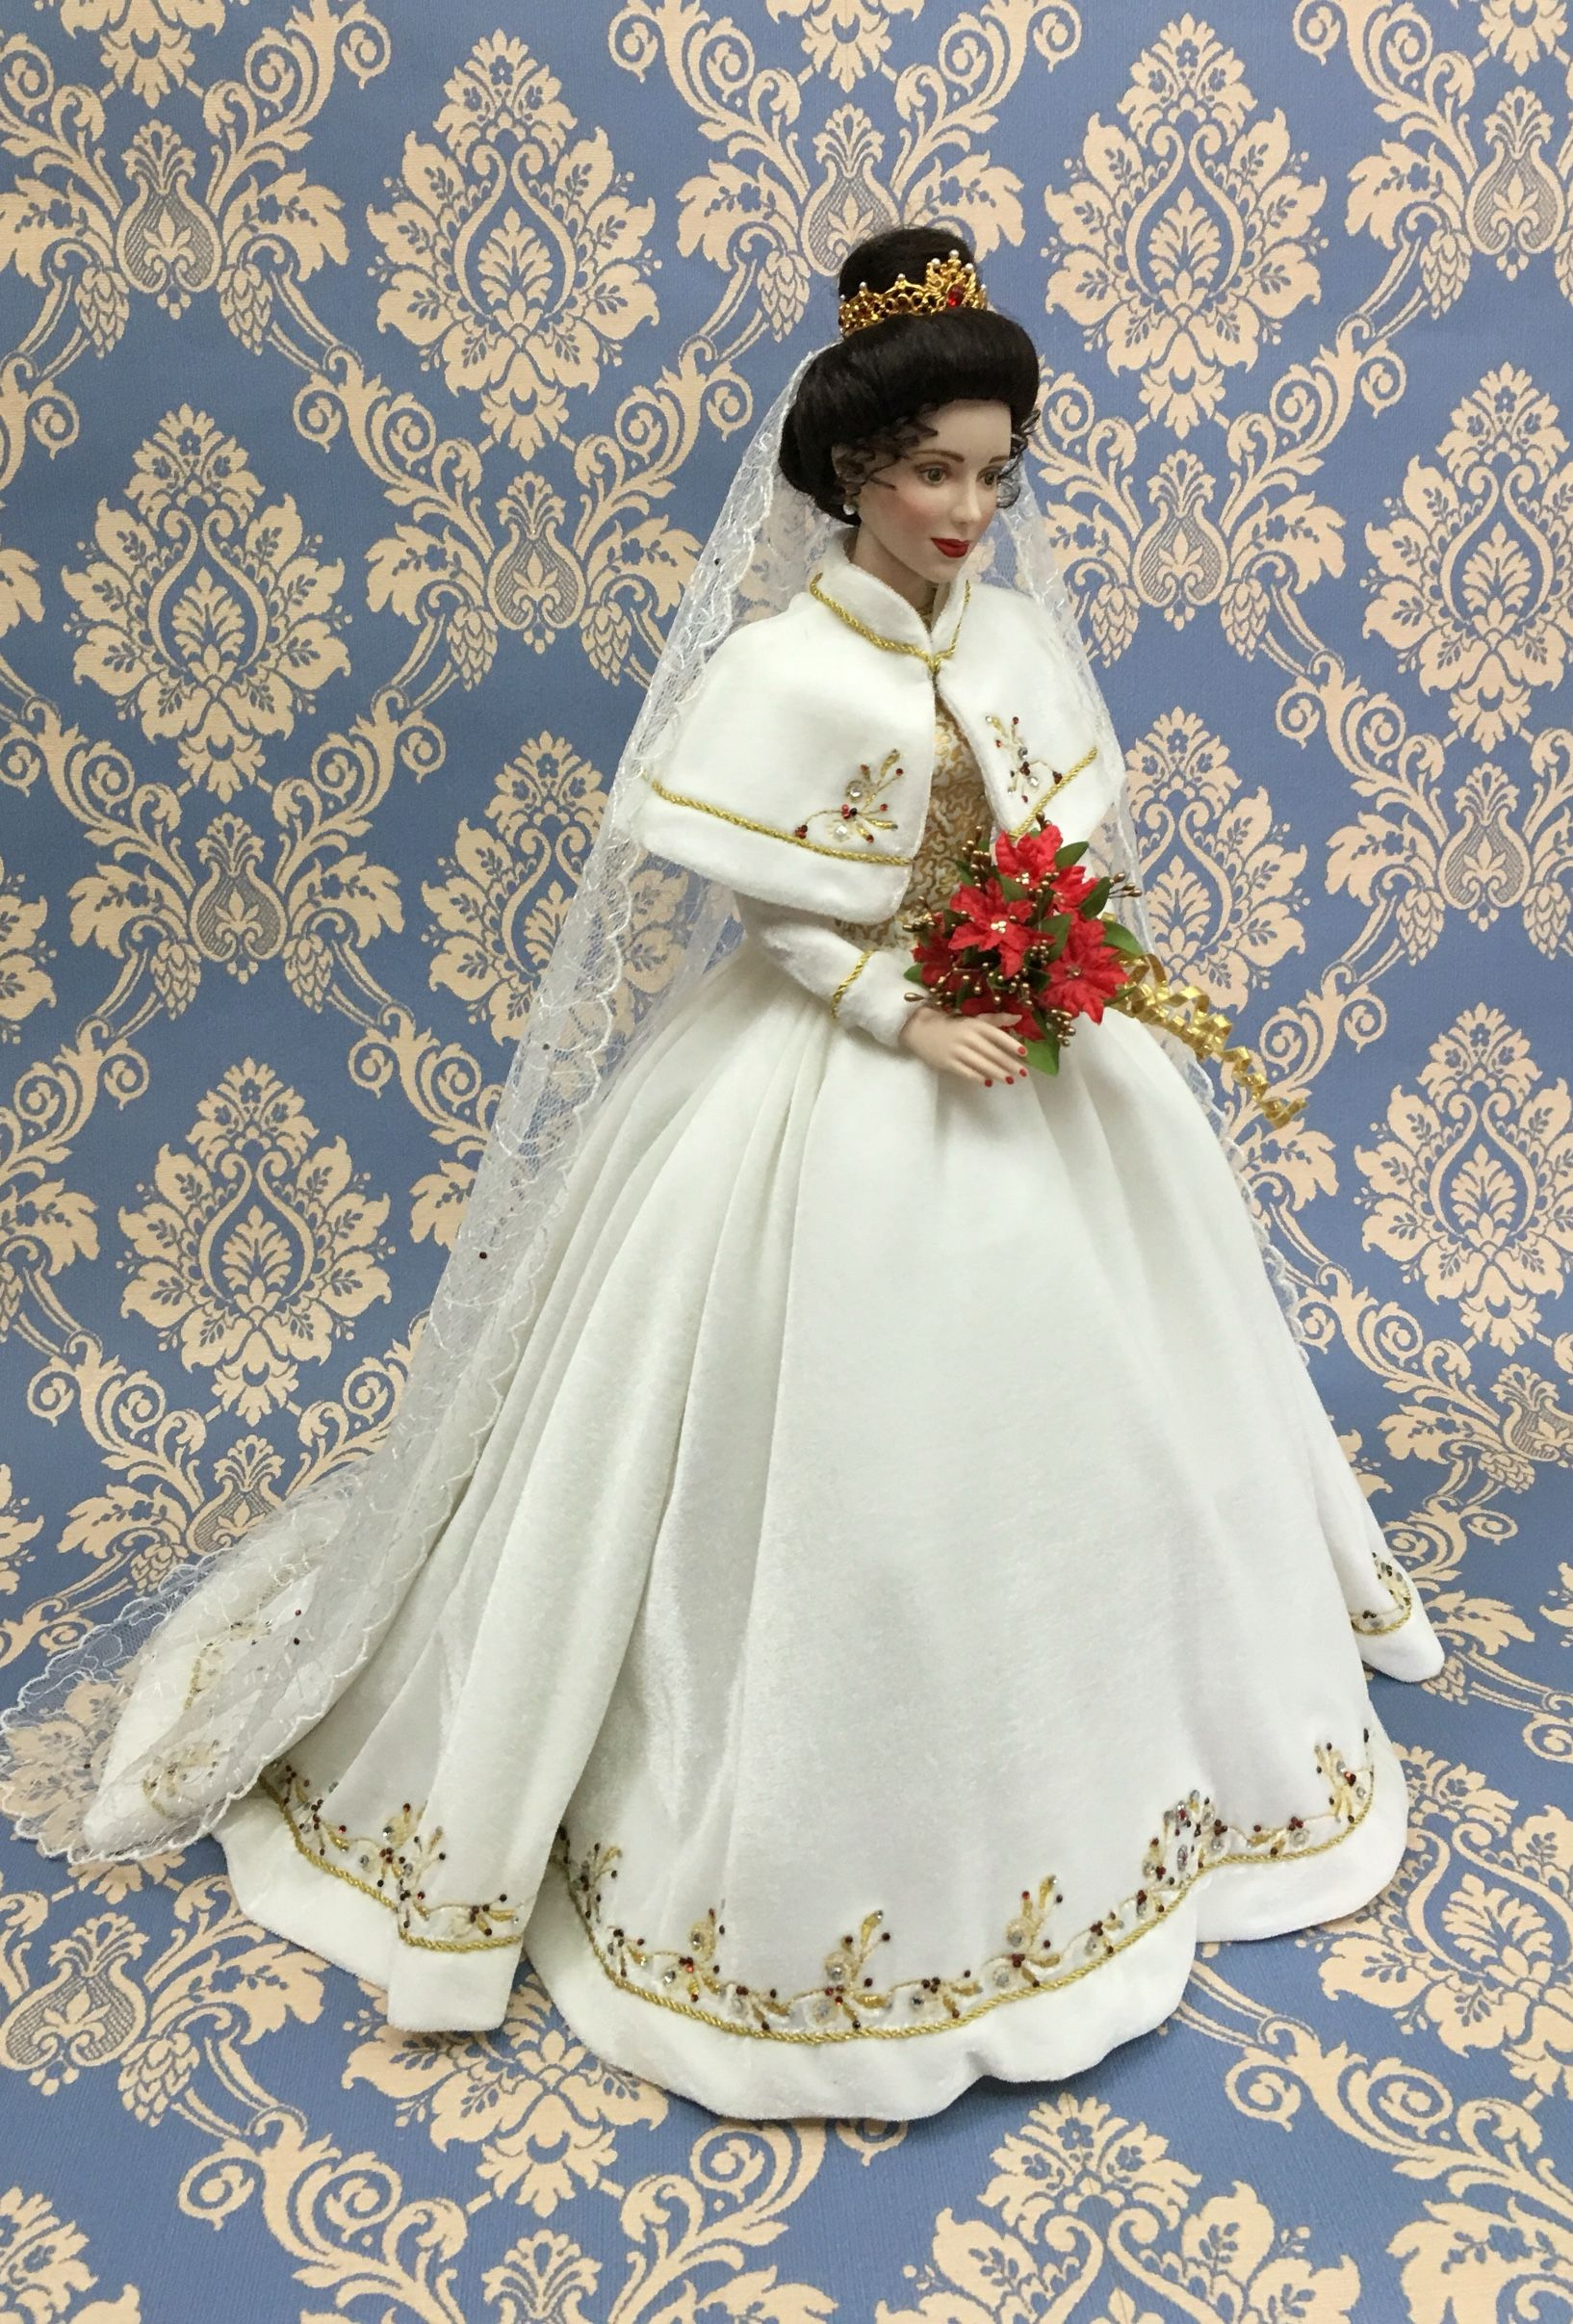 Katerina The Faberge Holiday Bride Doll Crafted In Fine Hand Painted Porcelain She Wears A Gown And Shawl Of White Bride Dolls Barbie Costume Doll Dress [ 2414 x 1634 Pixel ]